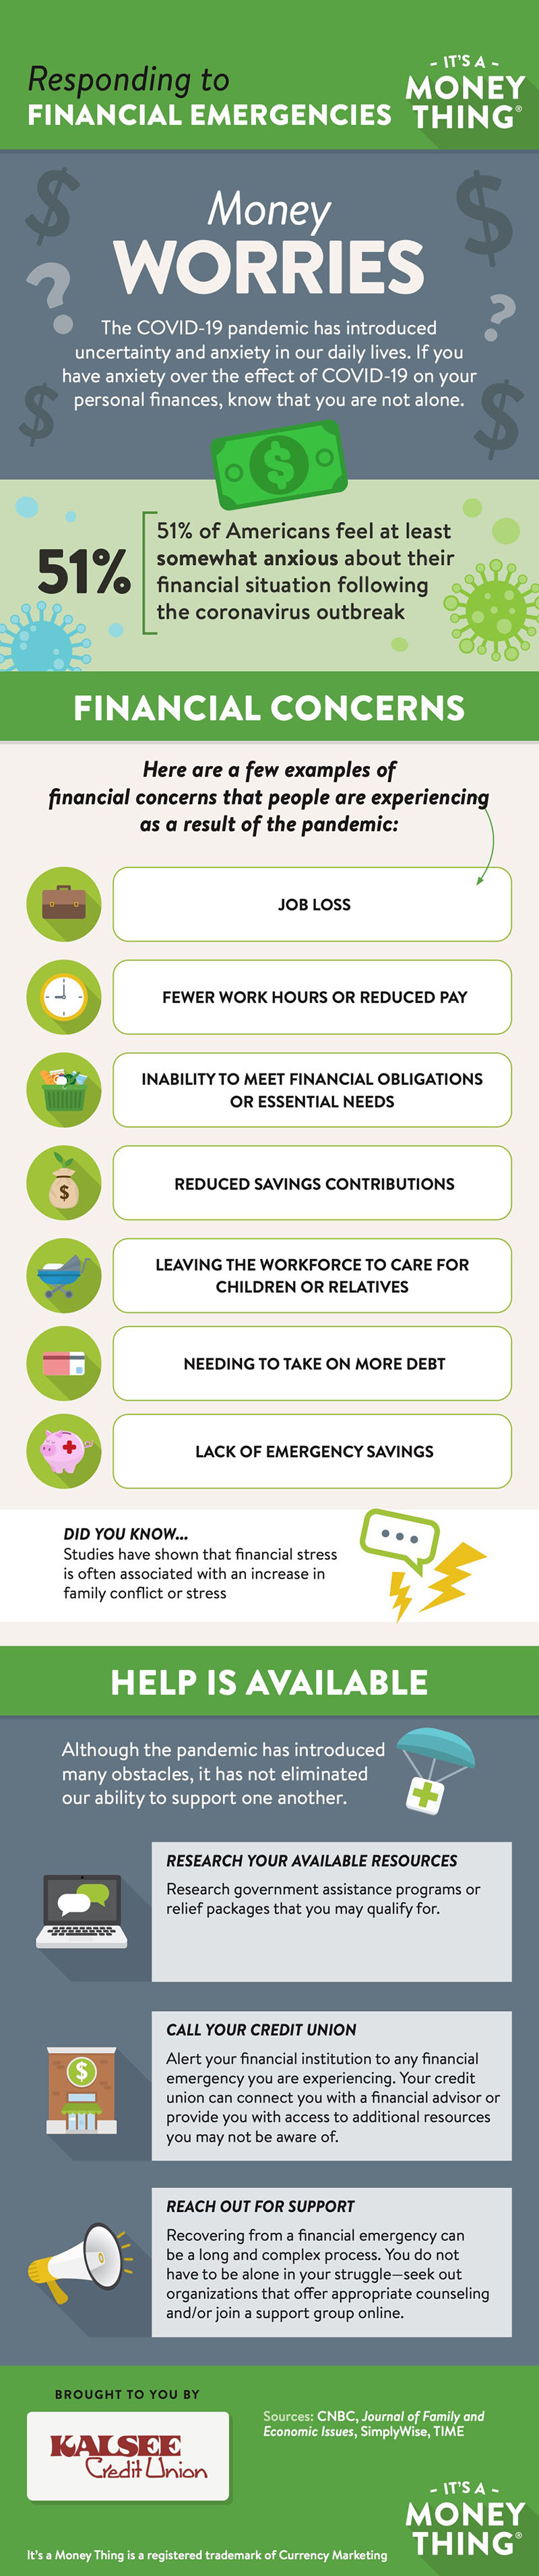 Responding to financial emergencies infographic